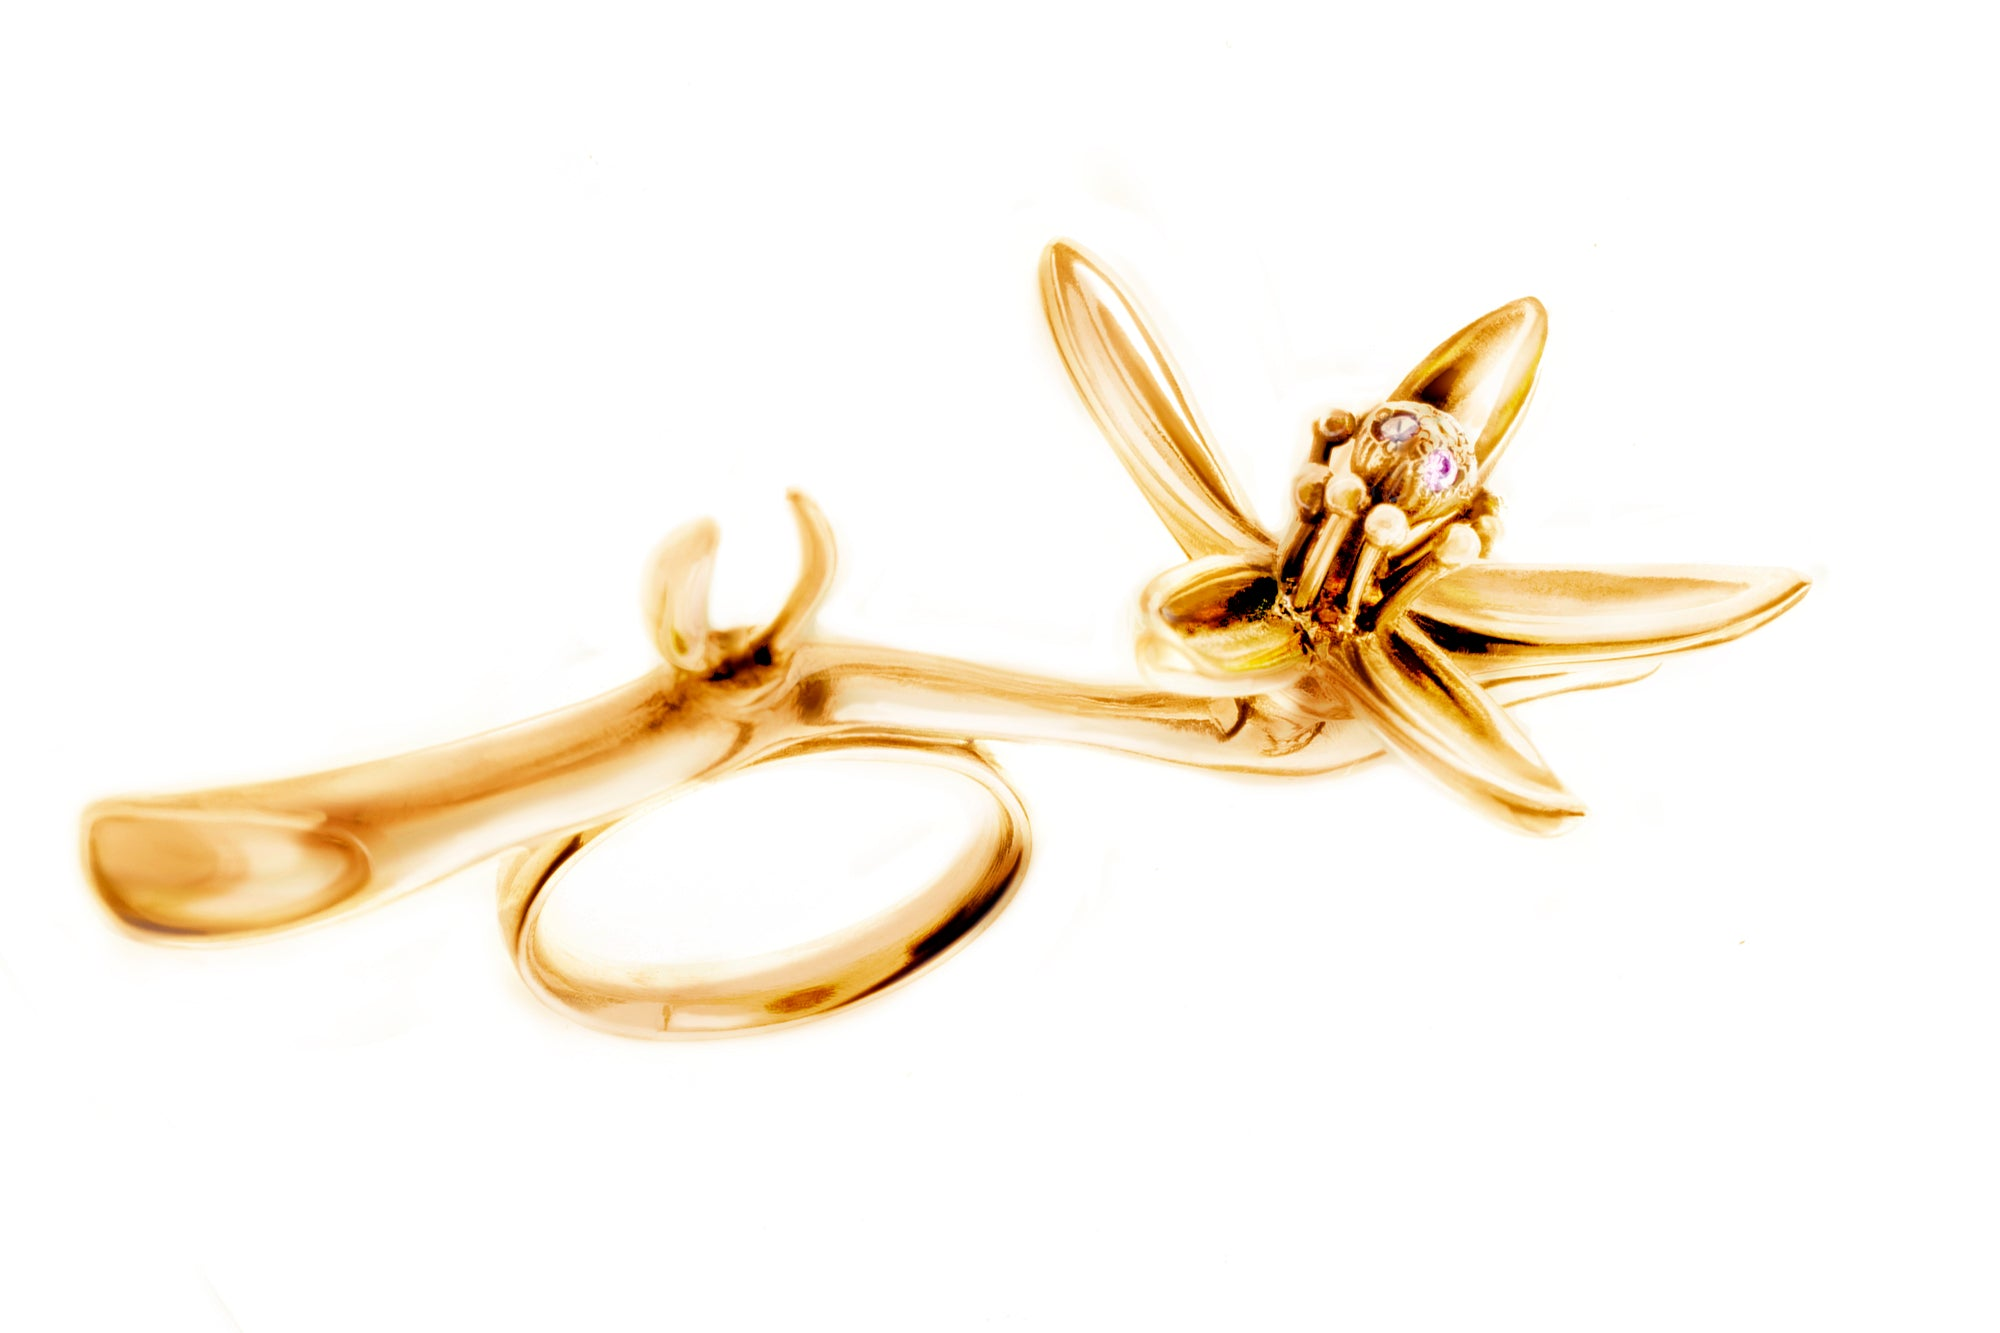 18 Karat Gold Art Nouveau Artist Orange Flower Cocktail Ring, Featured in Vogue